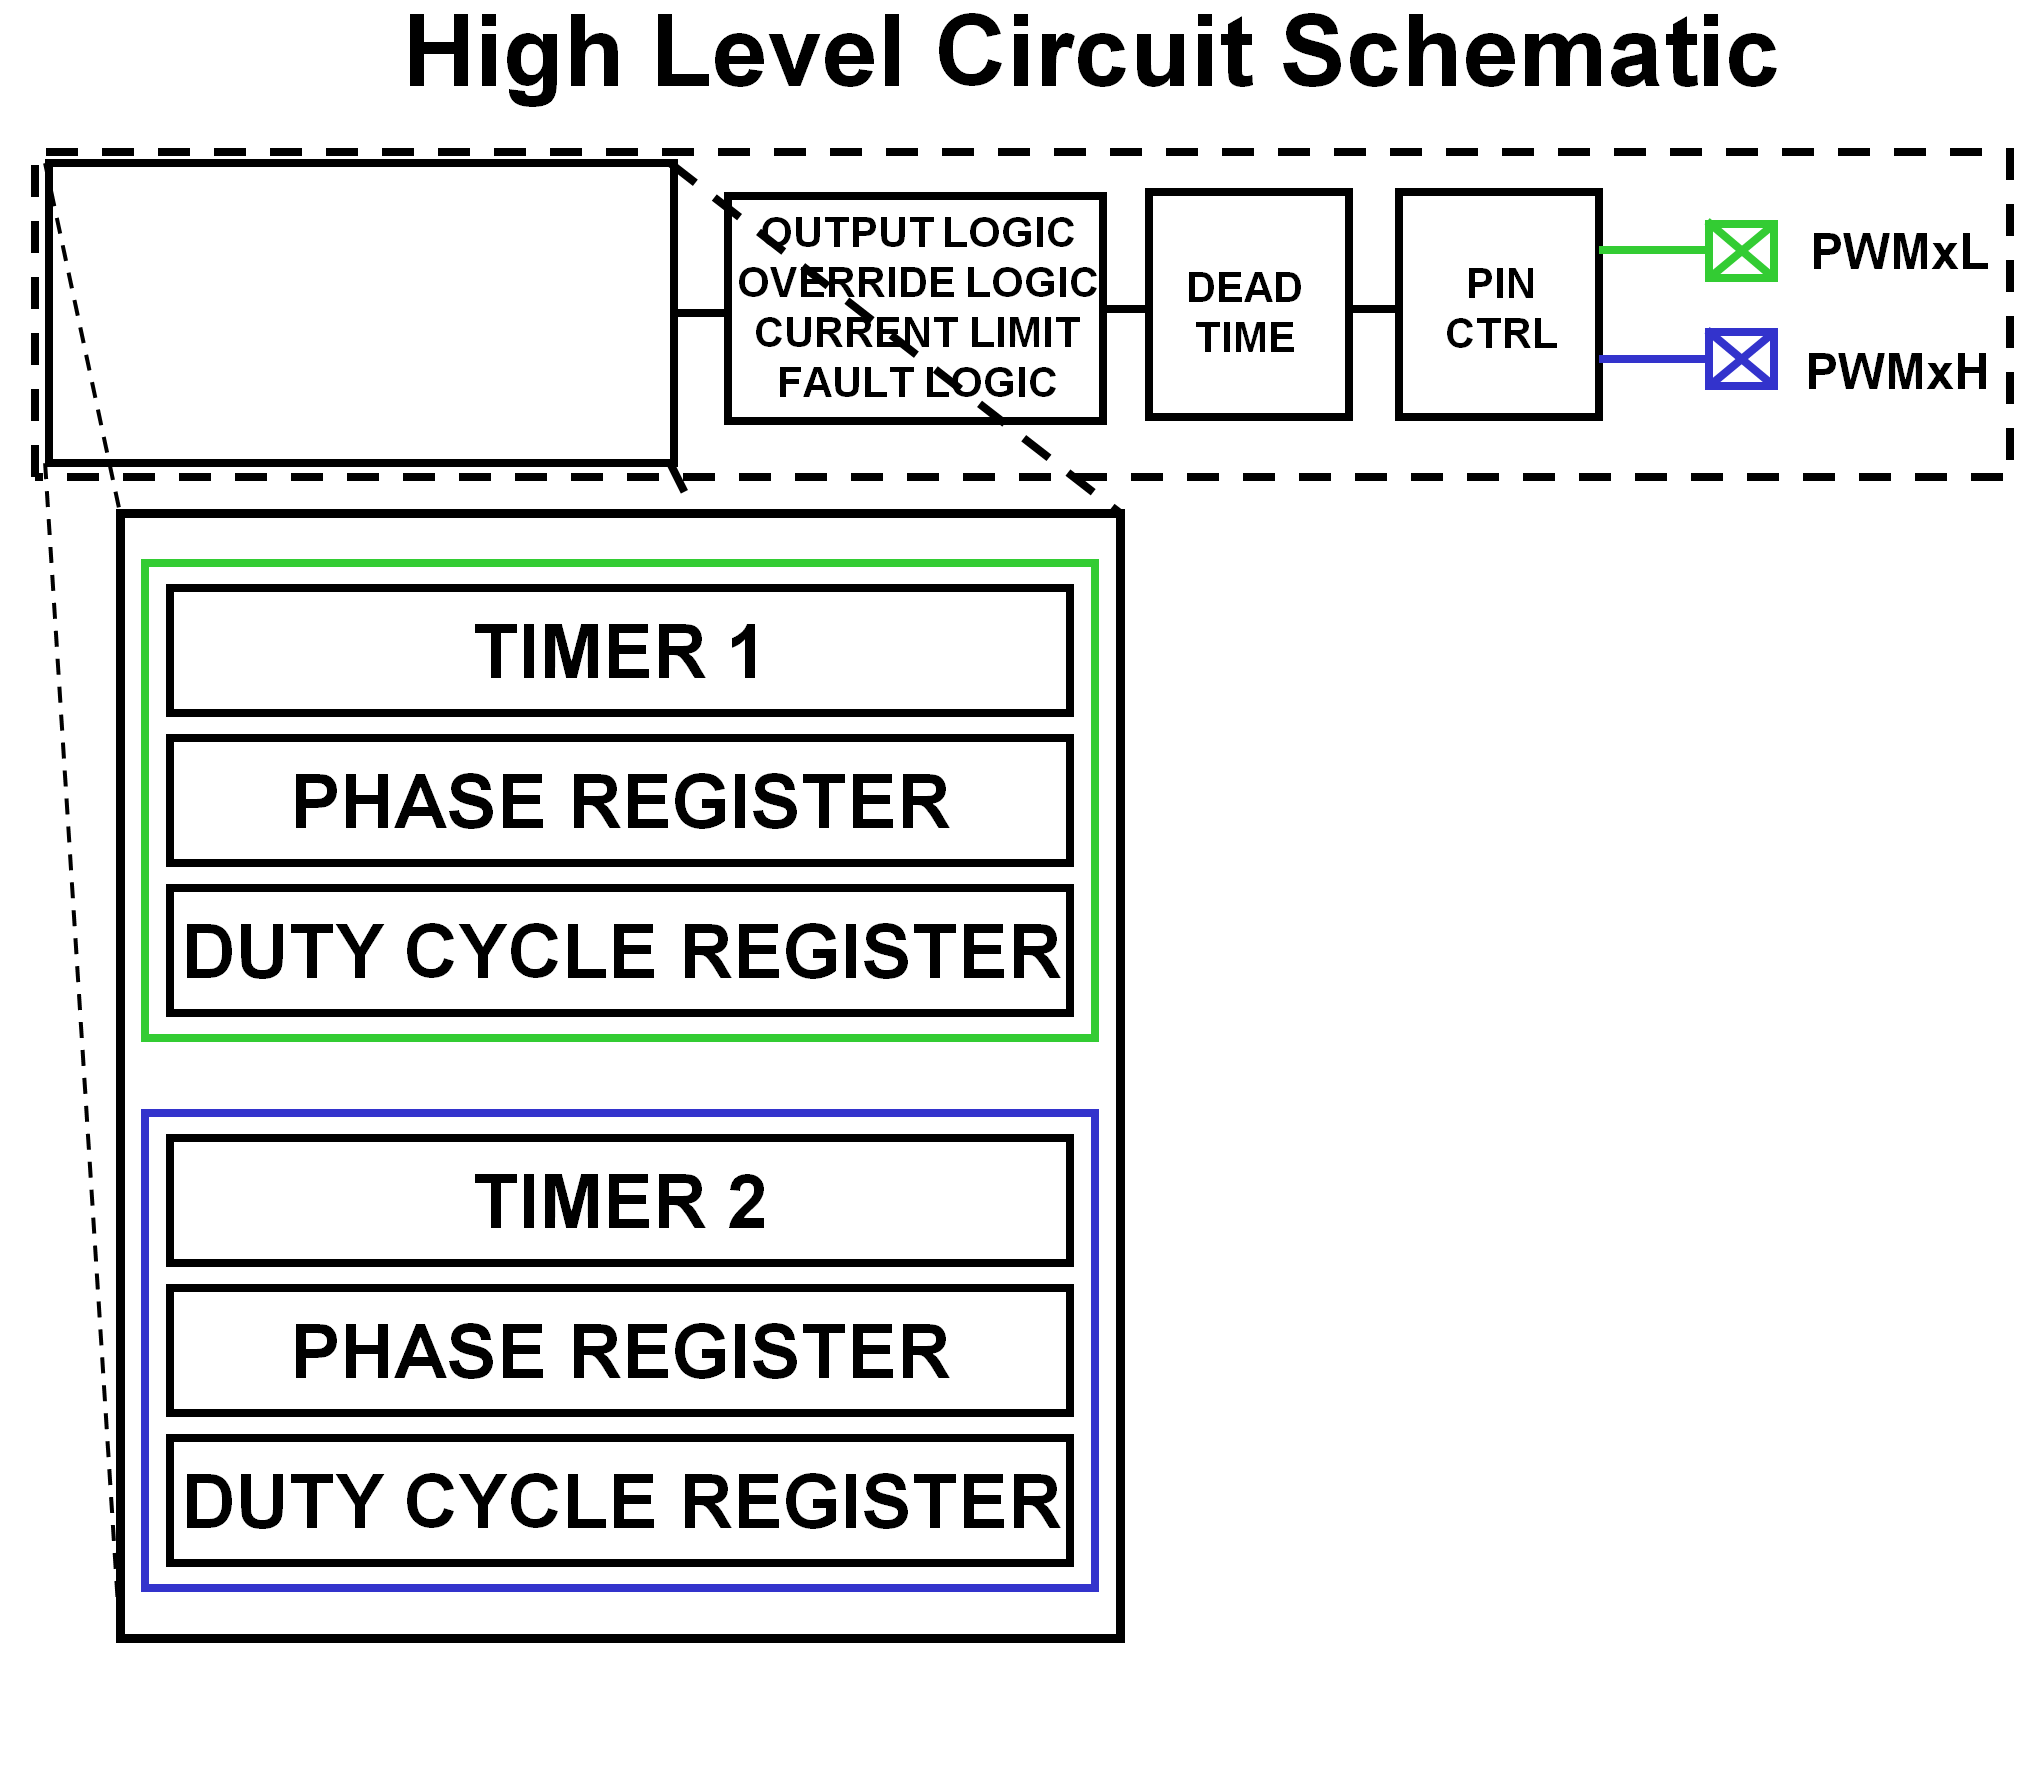 Pwm Peripheral Developer Help Generator Schematic Period Duty Cyle